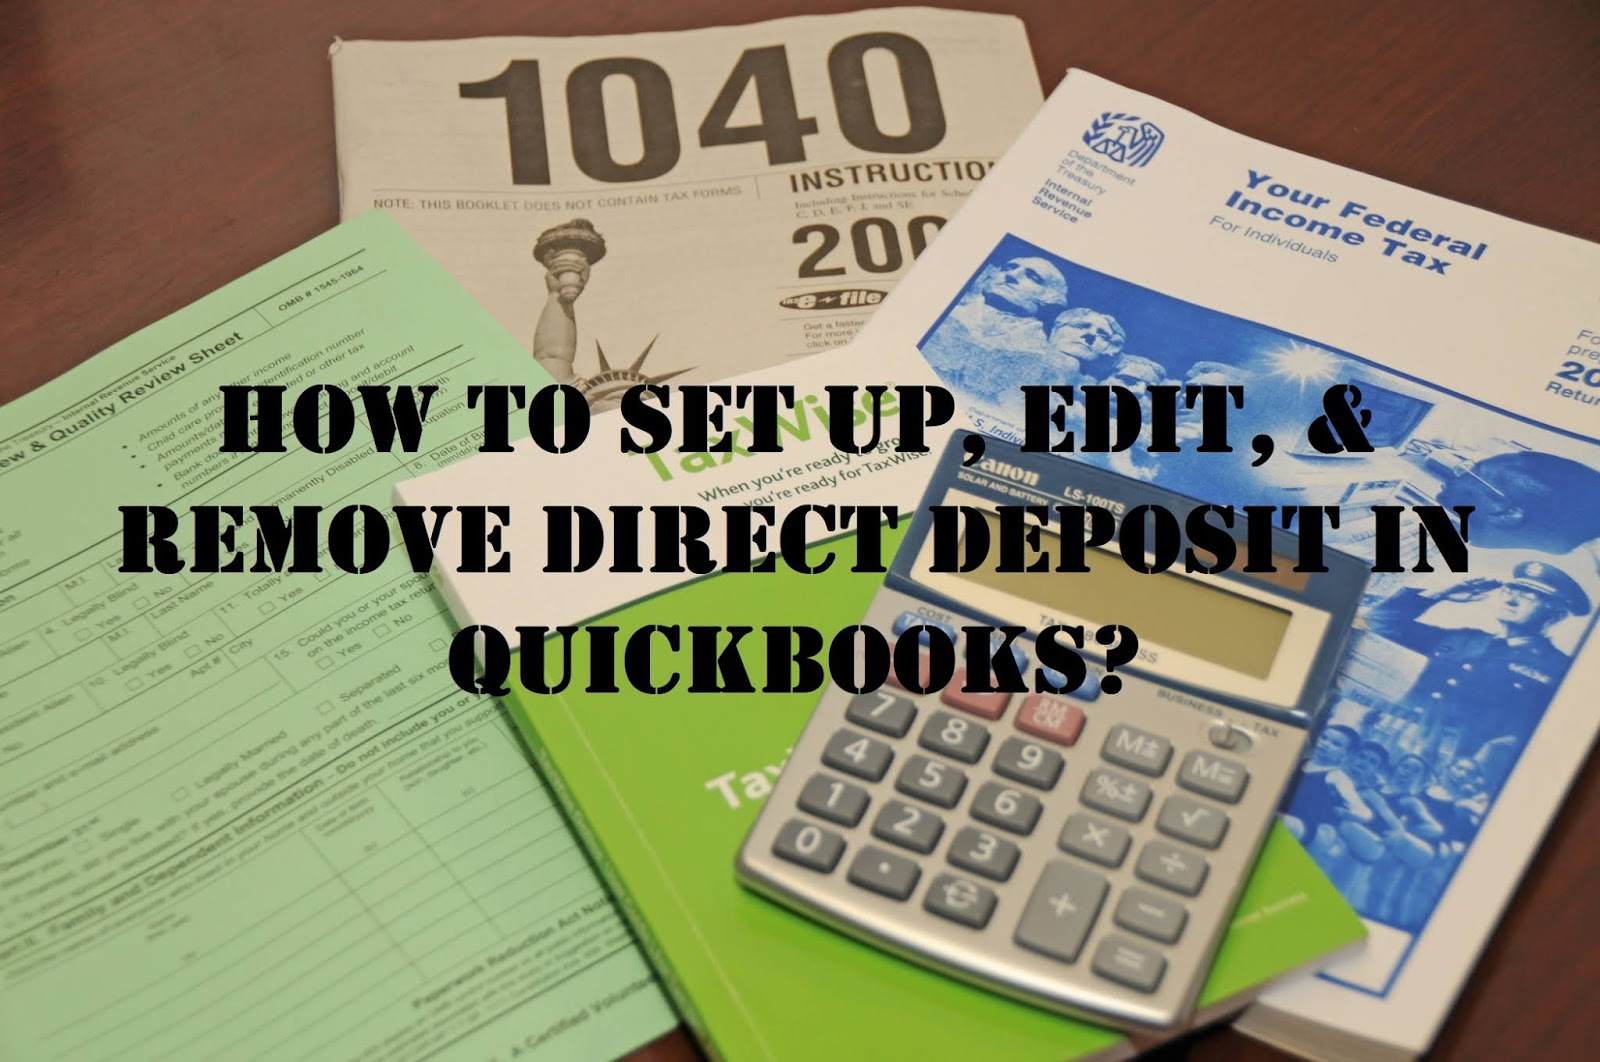 How To SetUp, Edit, And Remove Direct Deposit In Quickbooks?